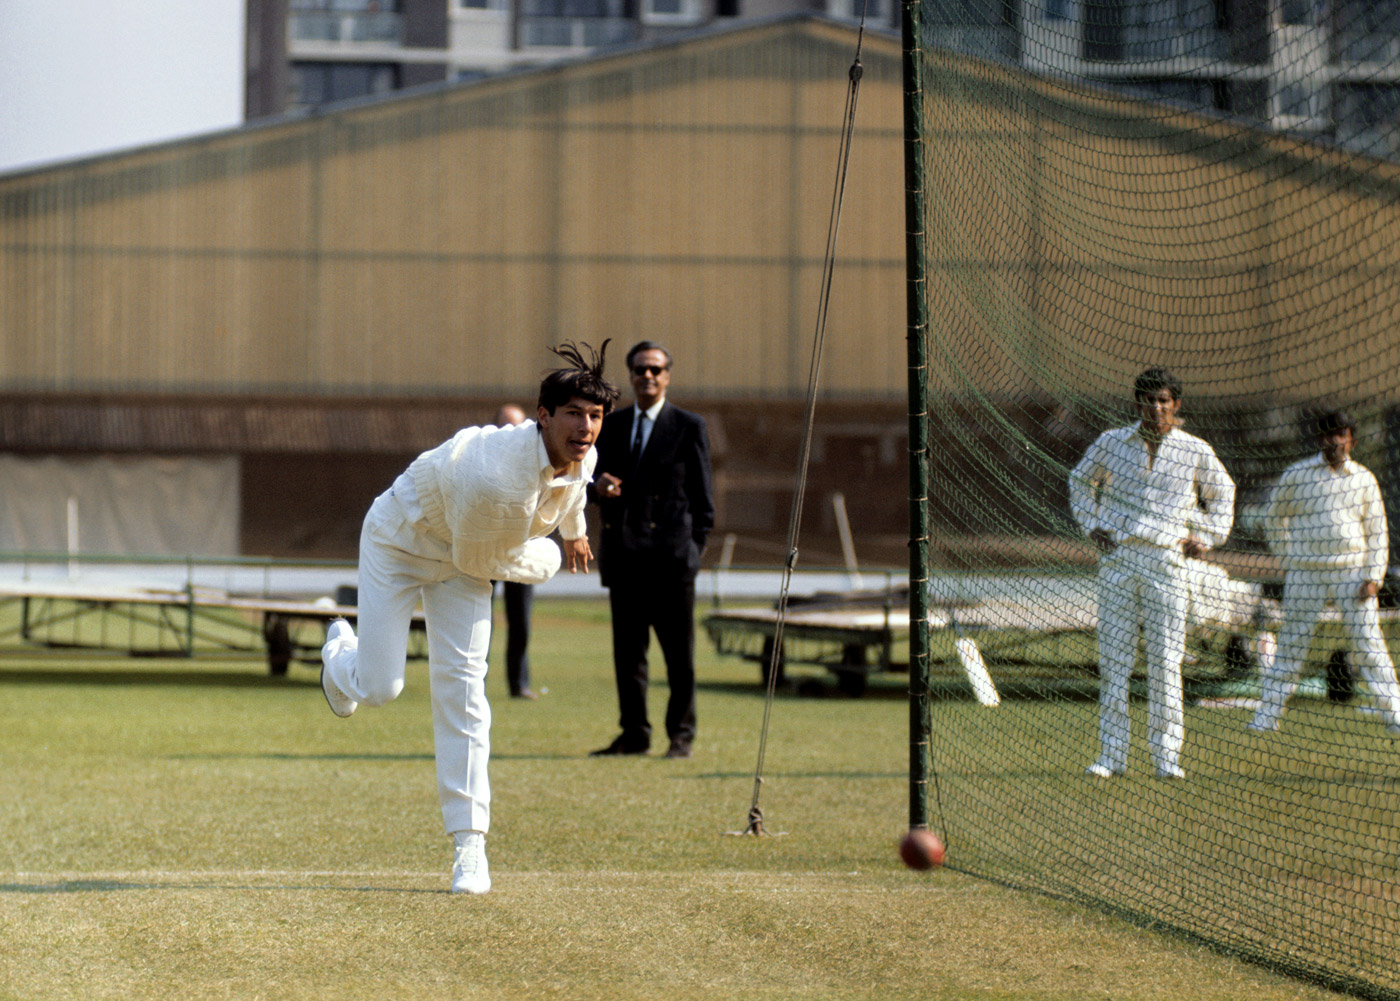 Imran Khan bowls in the nets